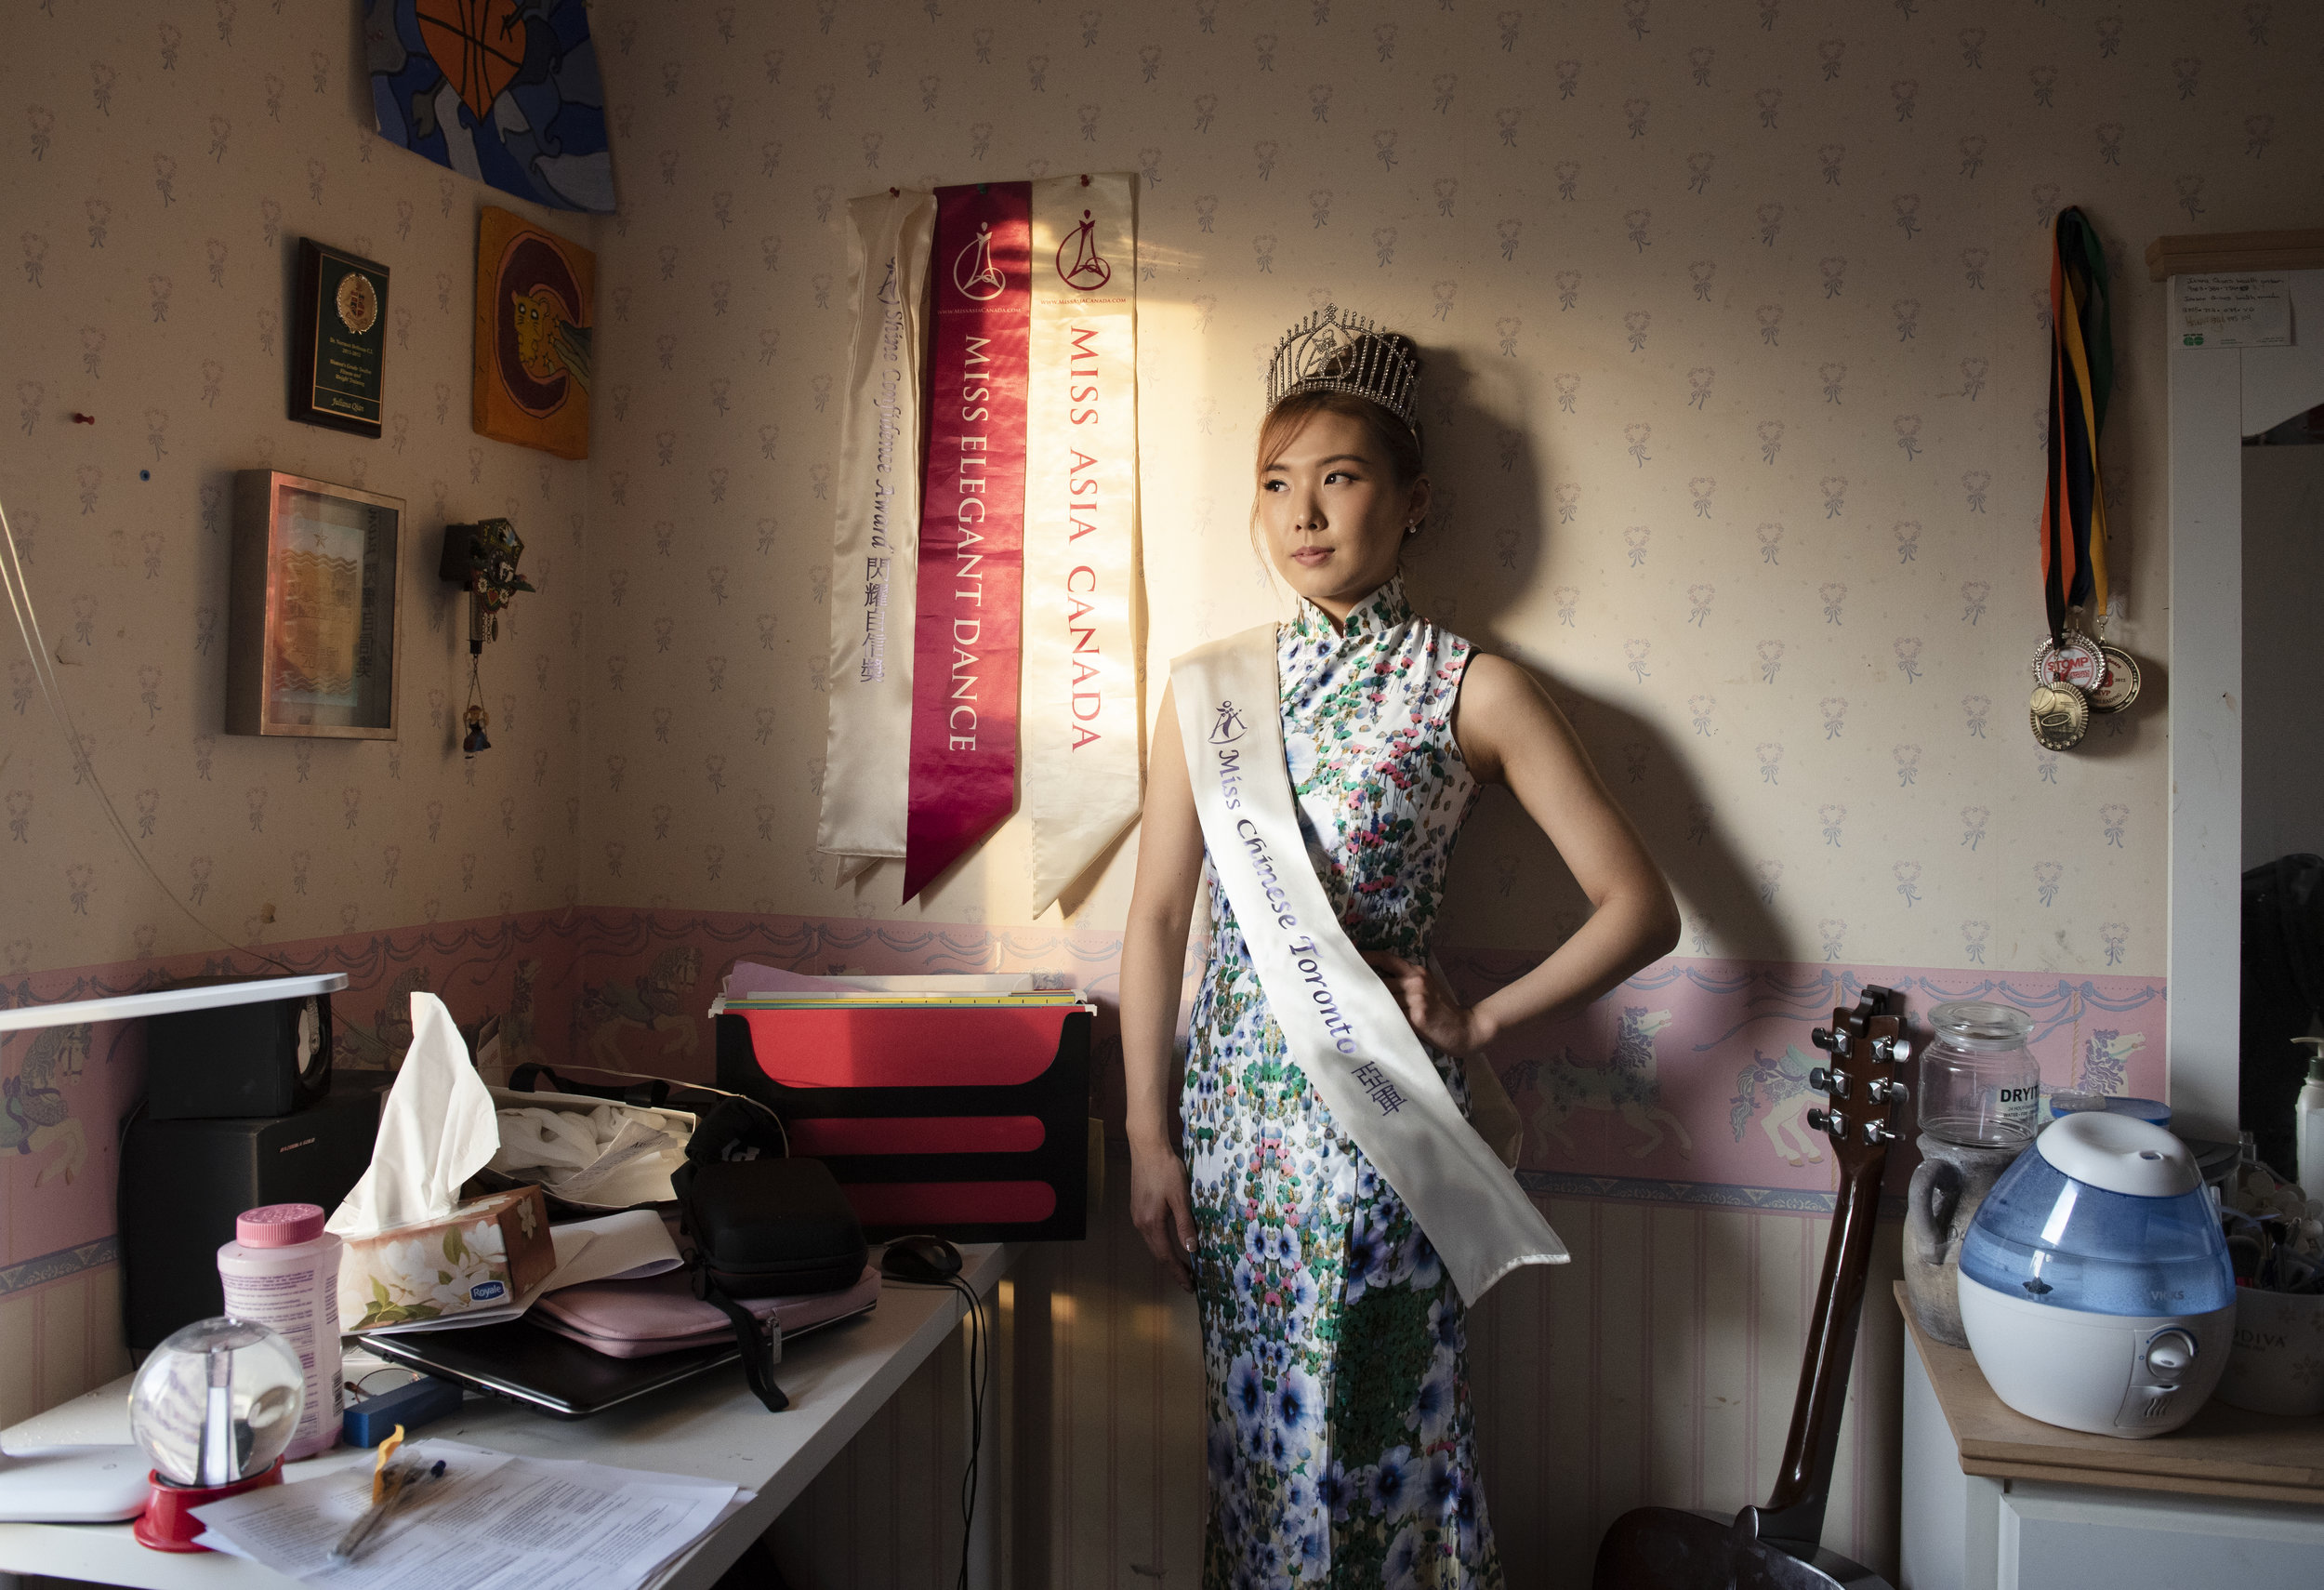 Juiliana Qian, 24, works as an administrator, but identifies more as a dancer and model. She was the first runner up for Miss Chinese Toronto in 2015. She still performs and models, but is not sure if she wants to do another pageant in the future. Shot in Juliana's home in Scarborough, on April 12, 2019.